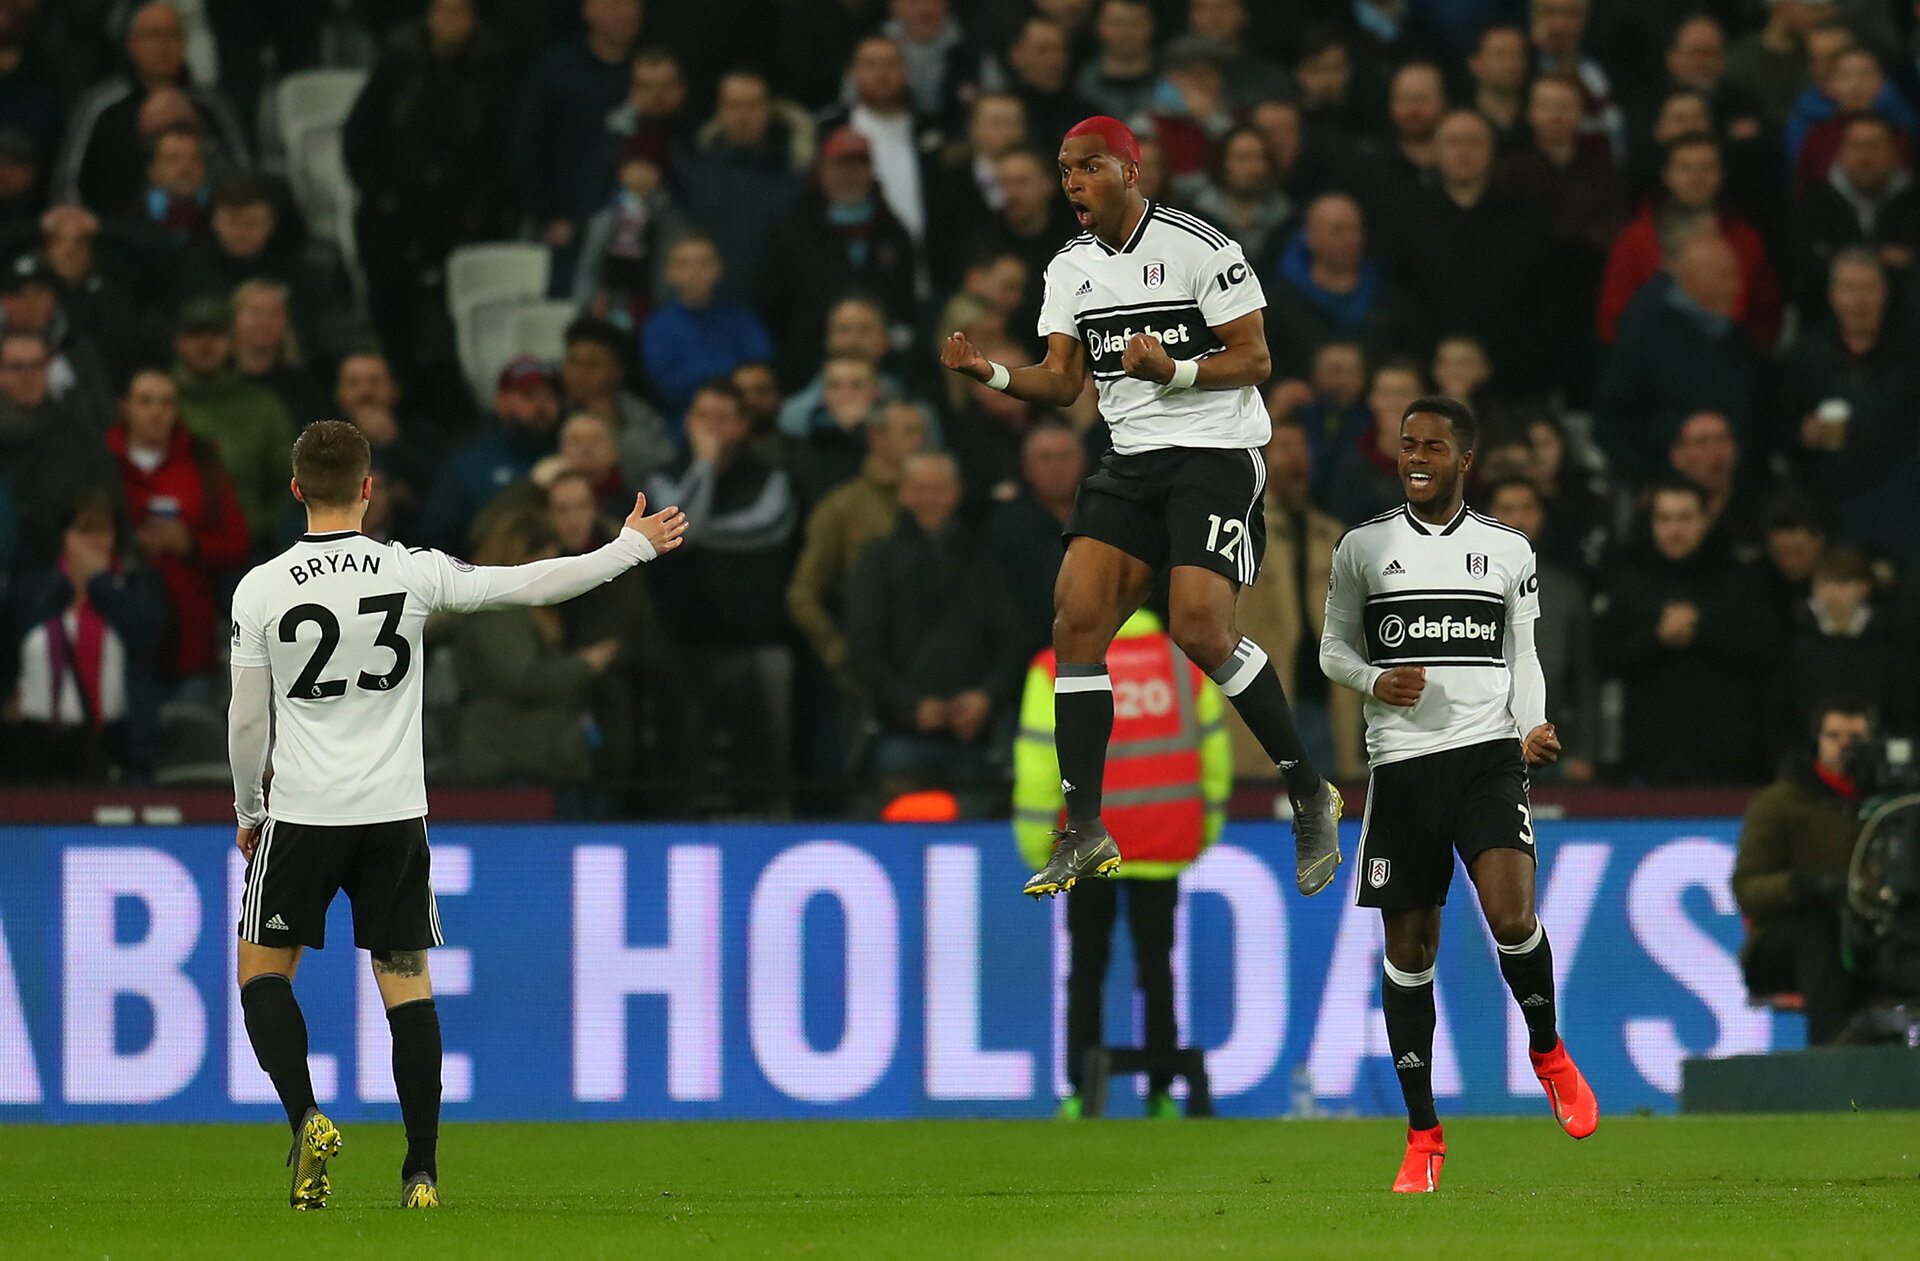 LONDON, ENGLAND - FEBRUARY 22:  Ryan Babel of Fulham (c) celebrates scoring his side's first goal during the Premier League match between West Ham United and Fulham FC at the London Stadium on February 22, 2019 in London, United Kingdom. (Photo by Catherine Ivill/Getty Images)